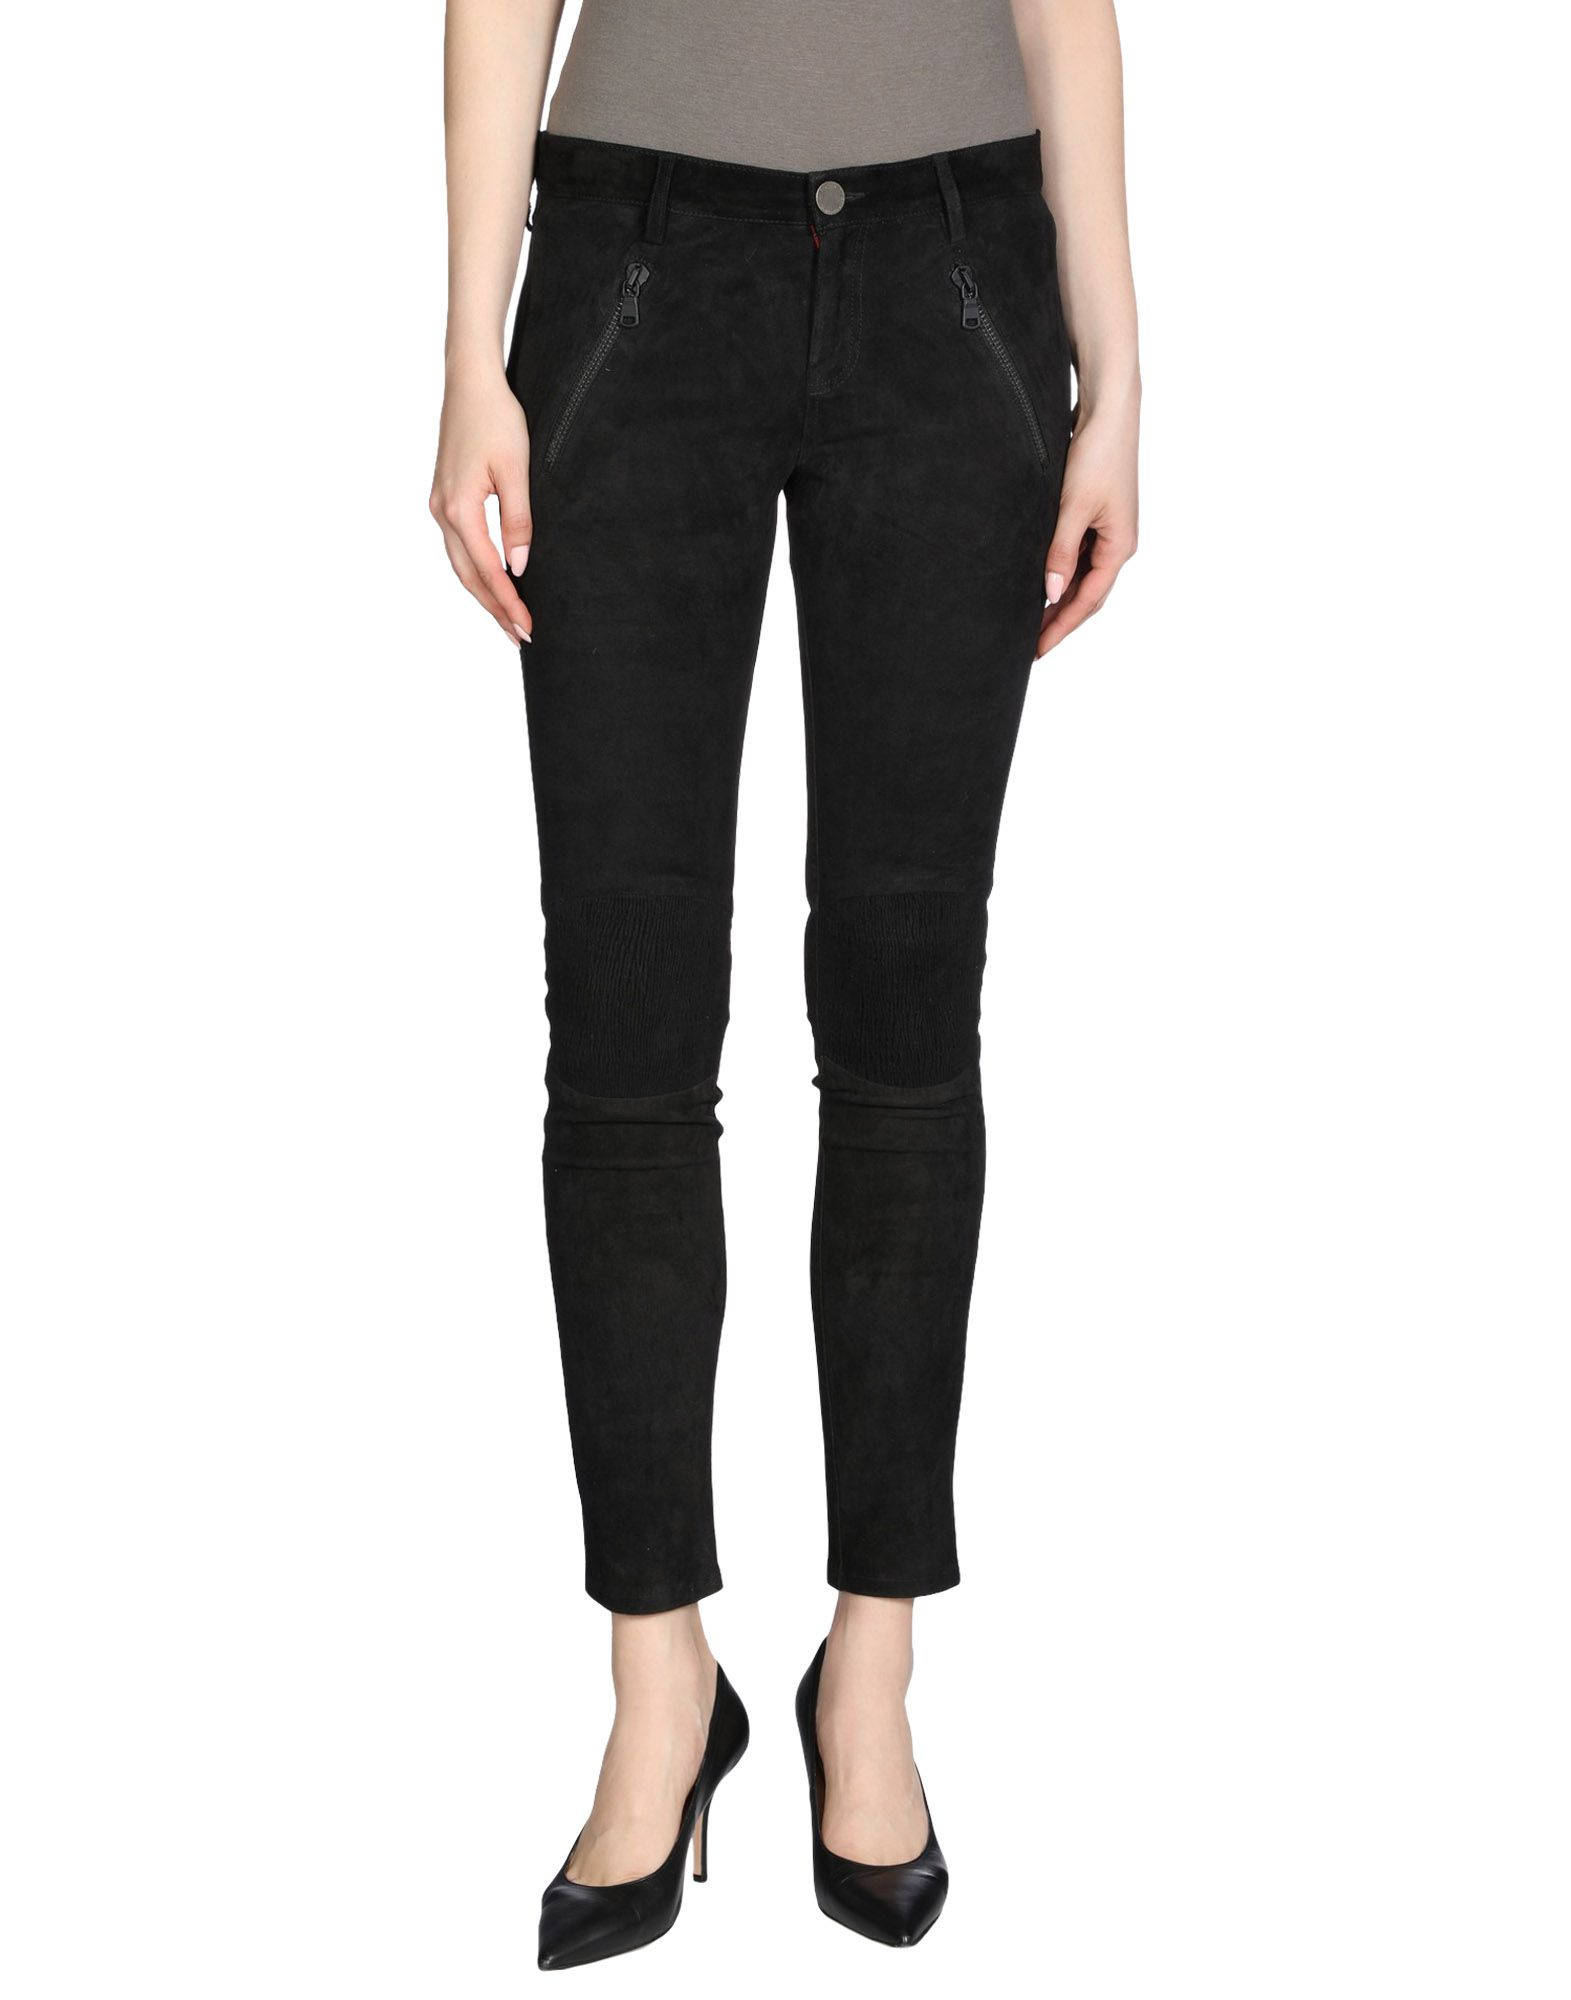 ETIENNE MARCEL Casual Pants in Black